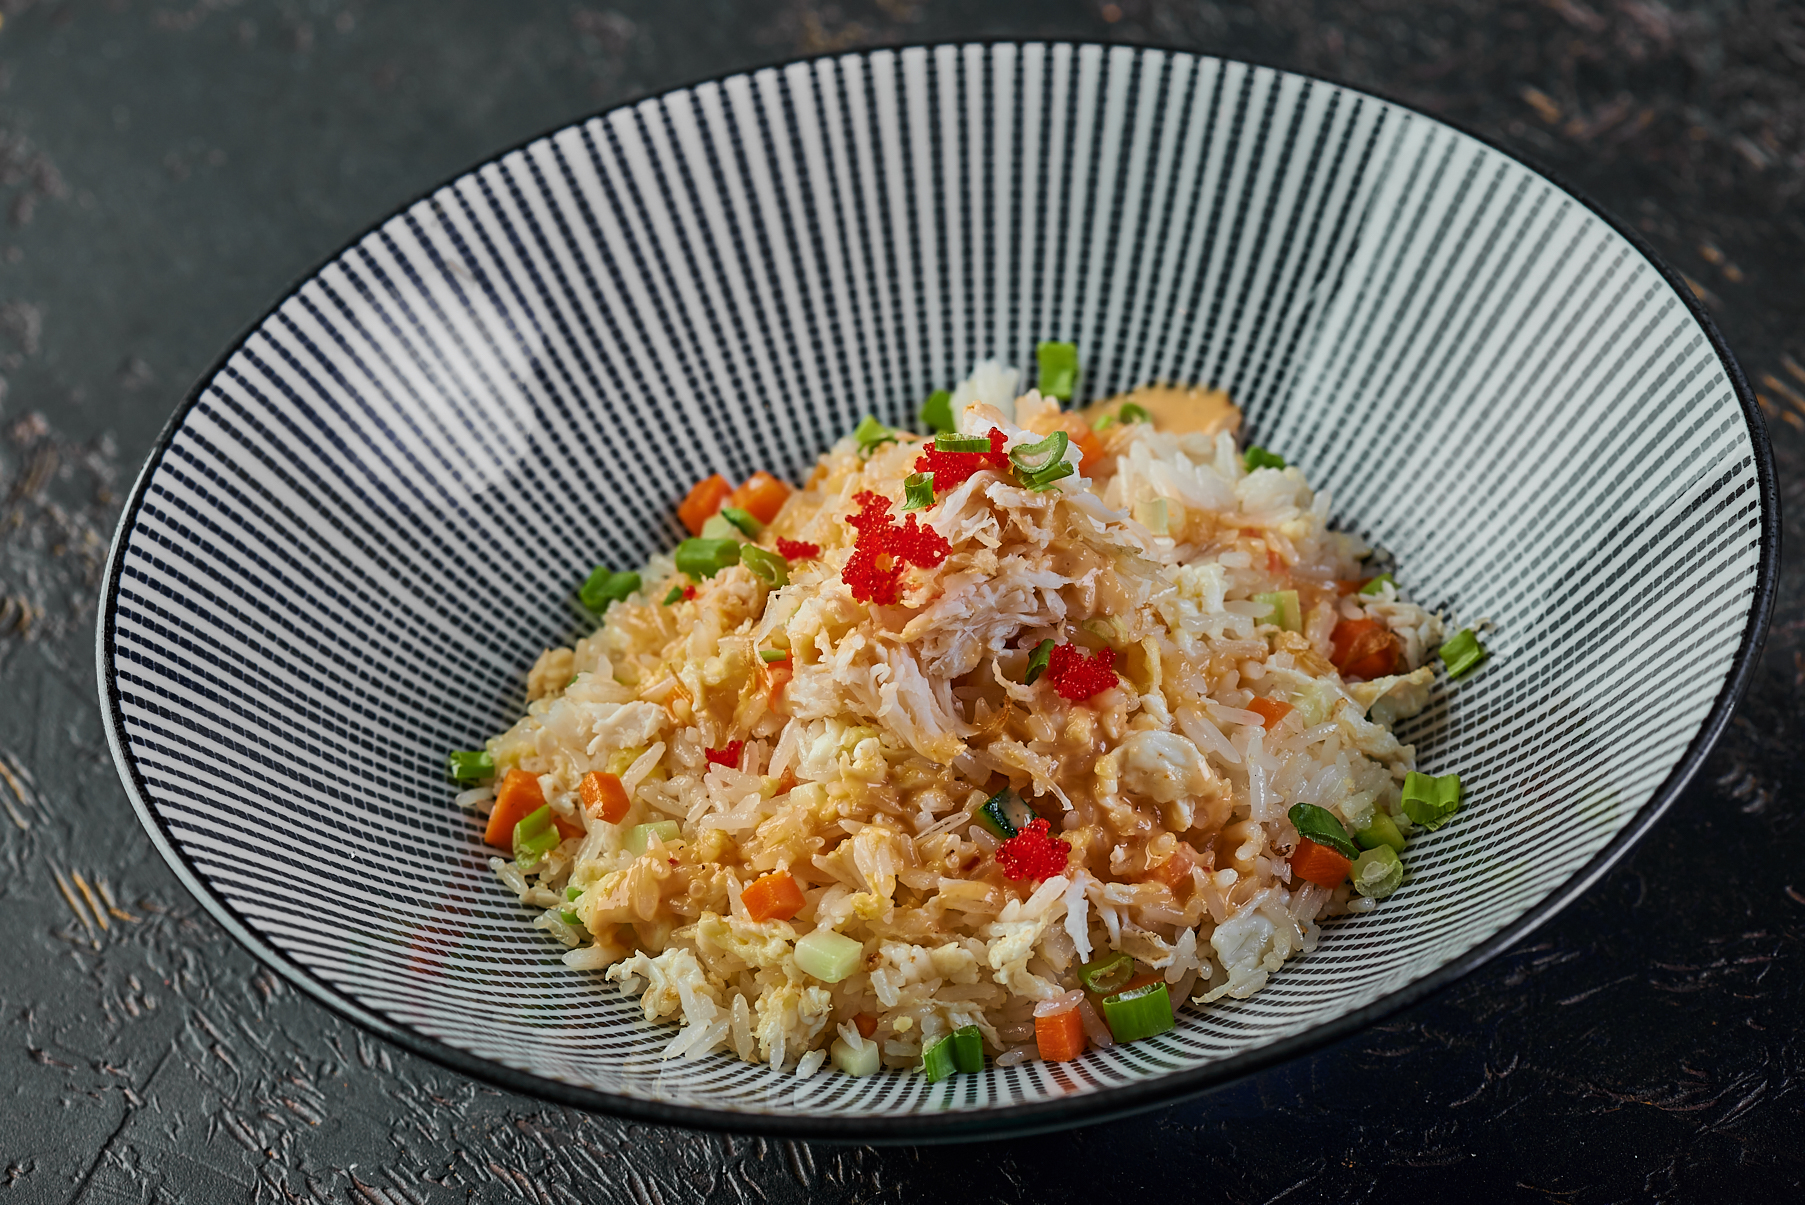 Fried rice with crab 950₽